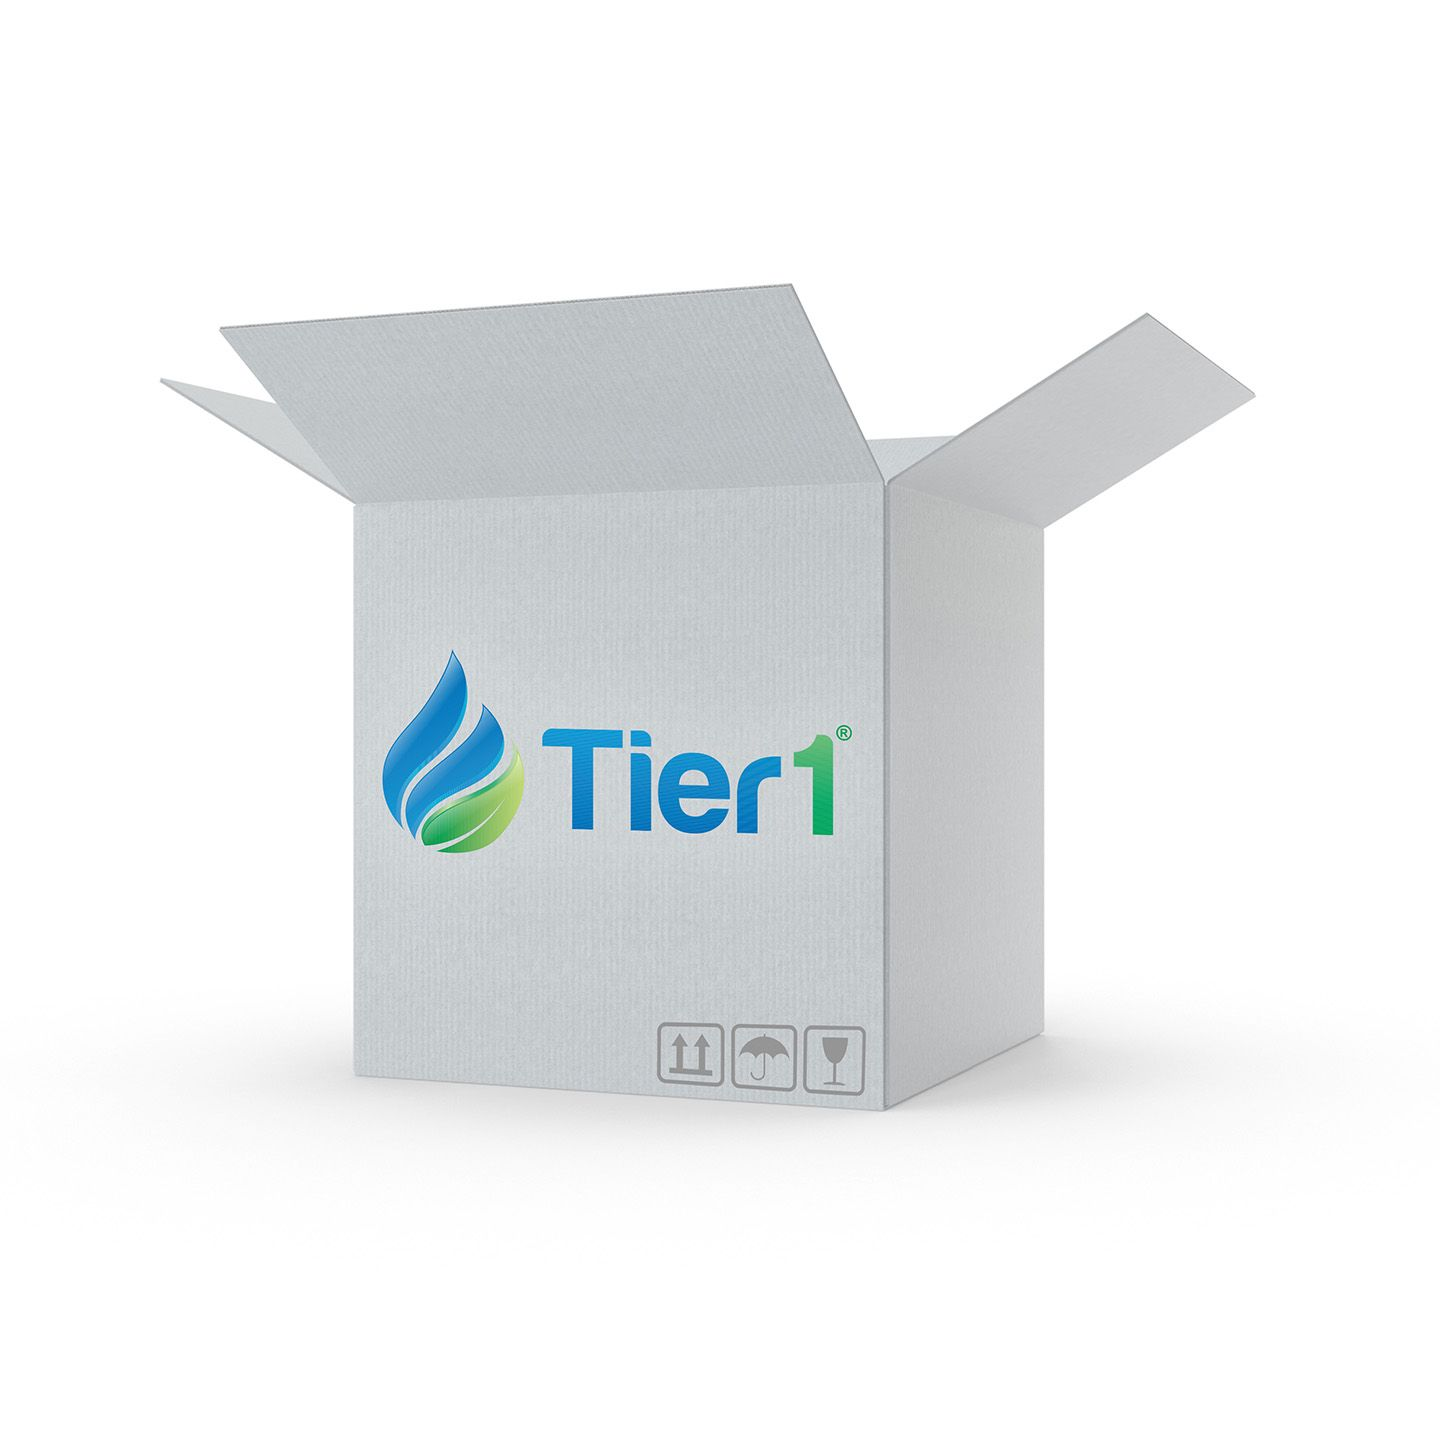 Tier1 Whole House Configurable Solution